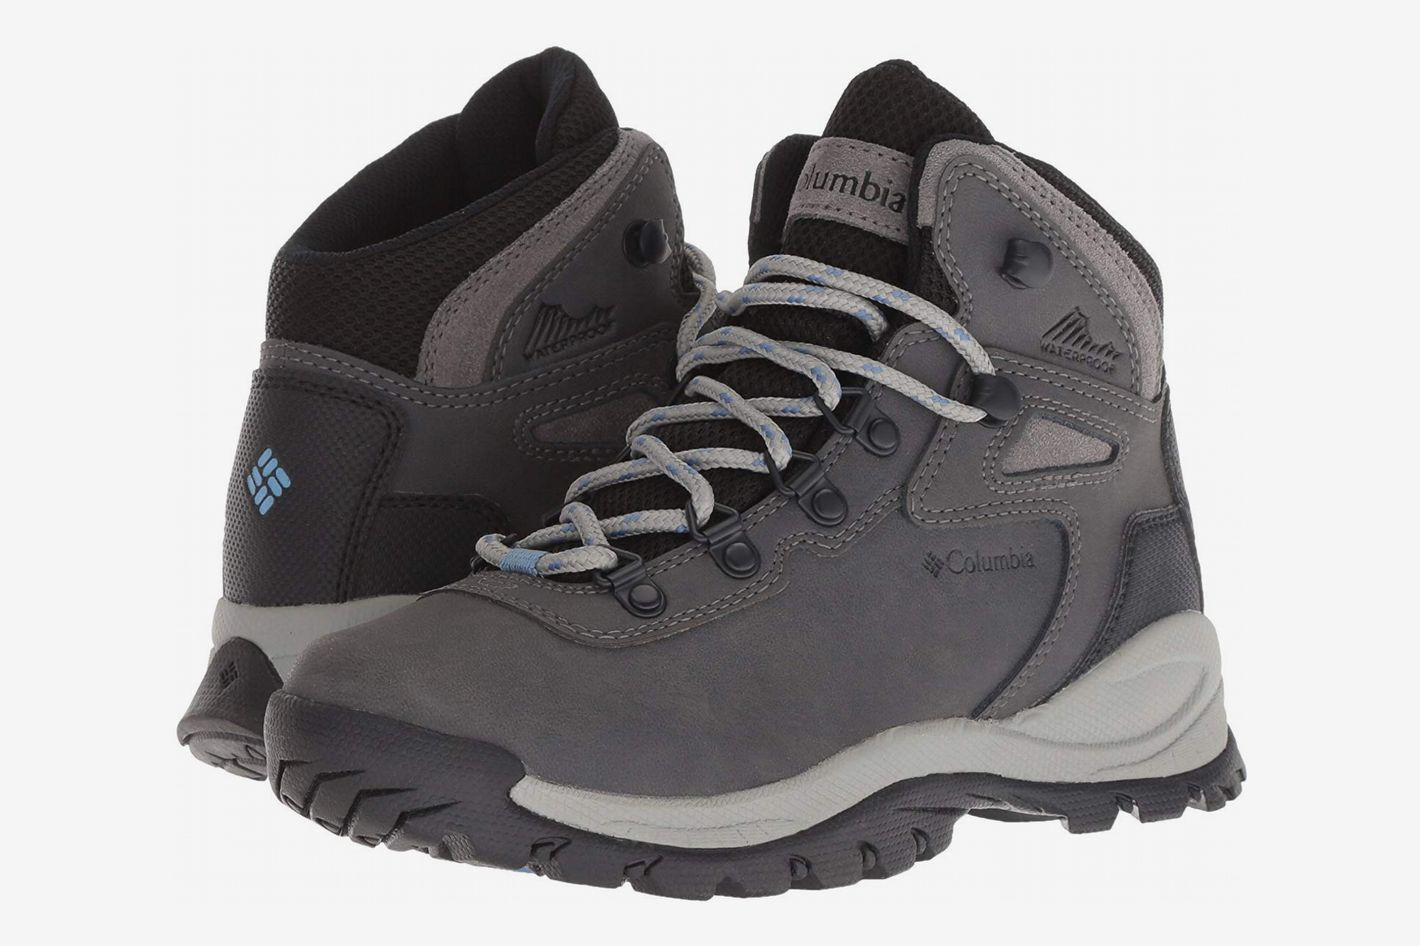 Columbia Women's Newton Ridge Plus Waterproof Hiking Boot